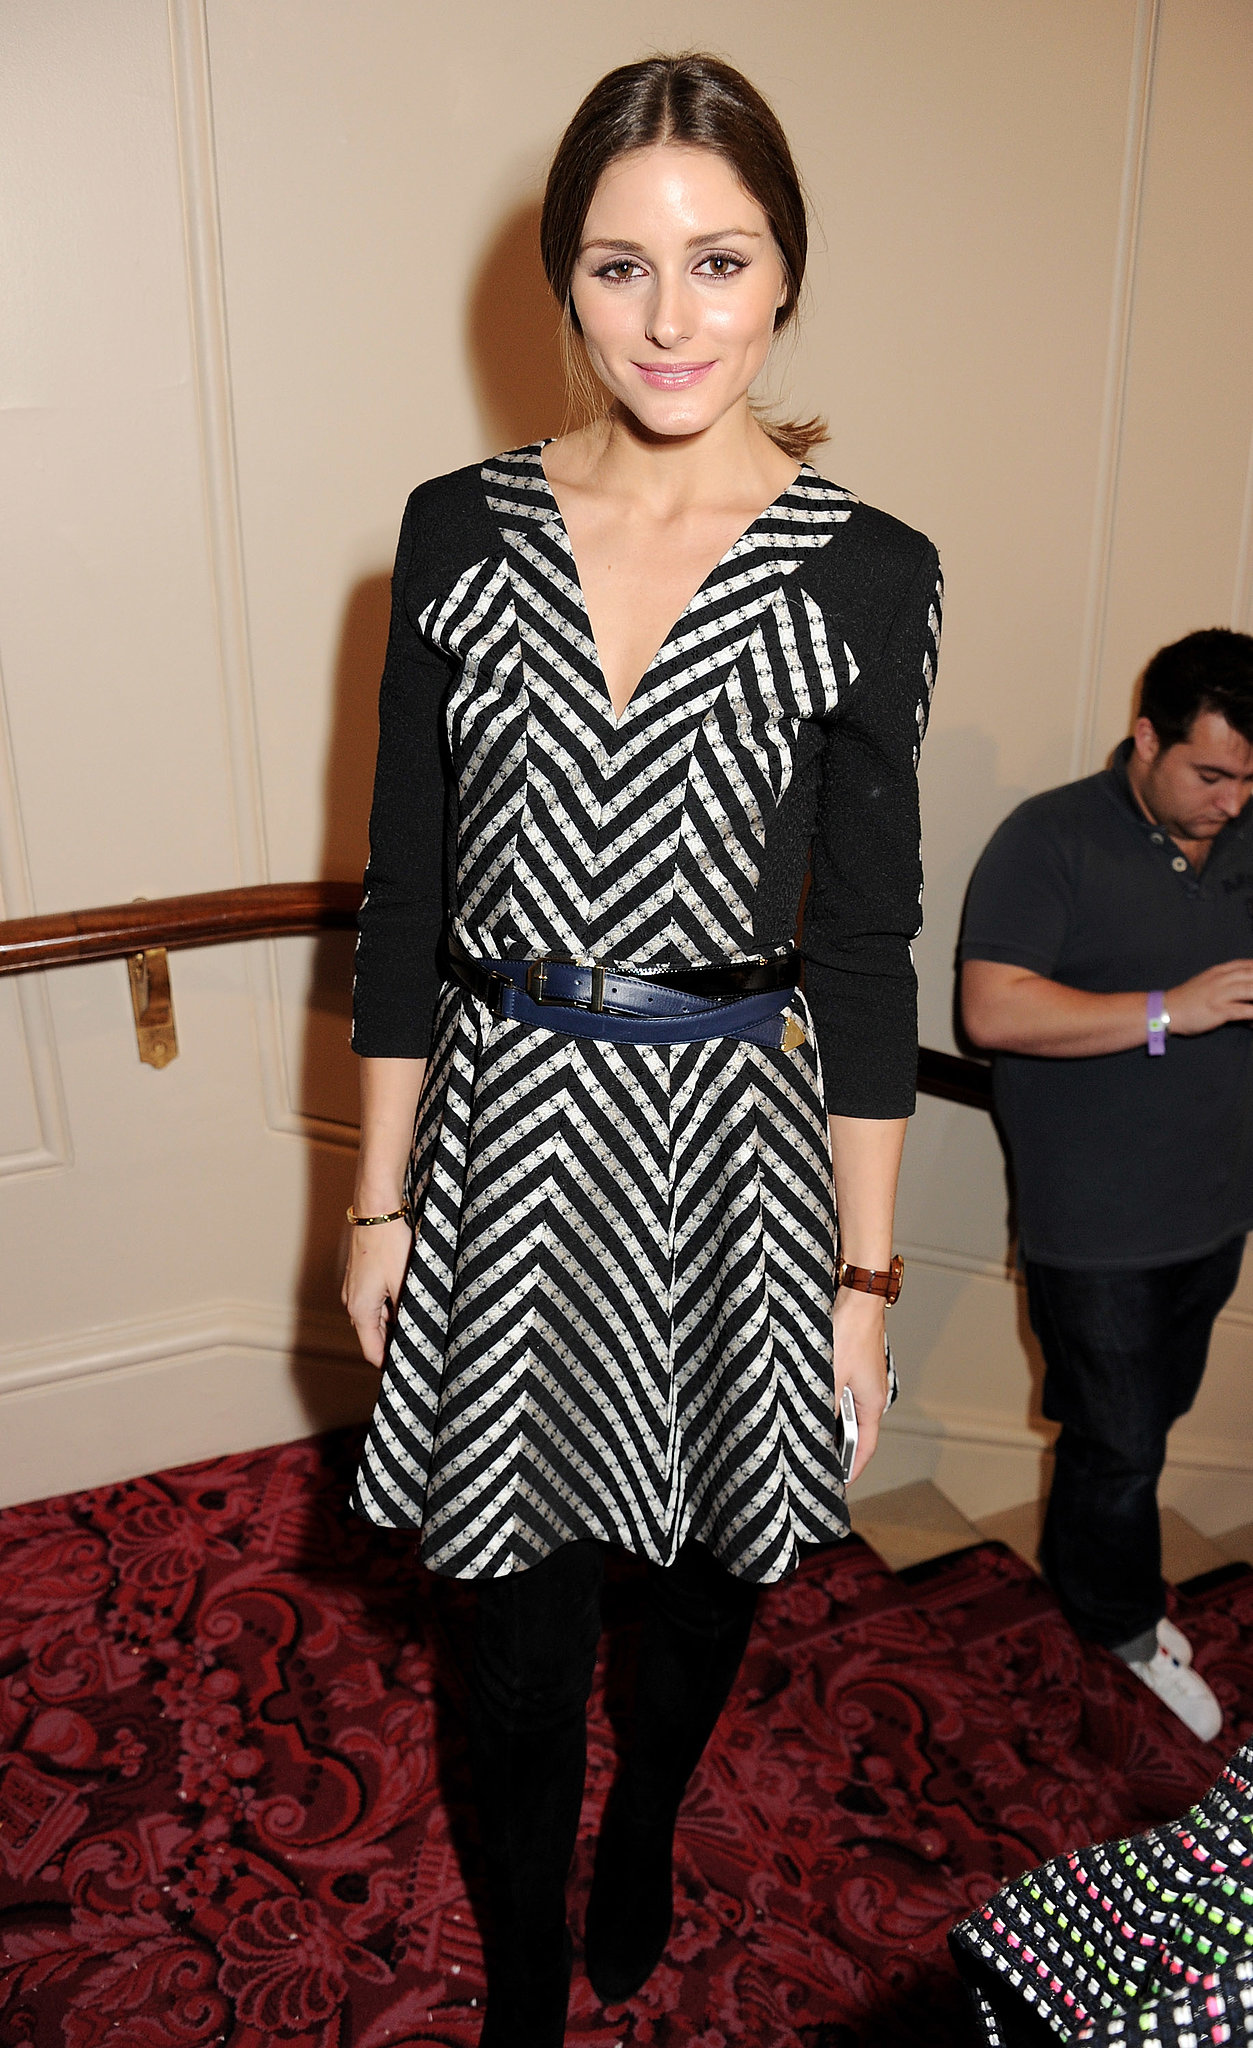 Olivia cinched her printed Matthew Williamson dress with a navy belt at the designer's show during London Fashion Week.